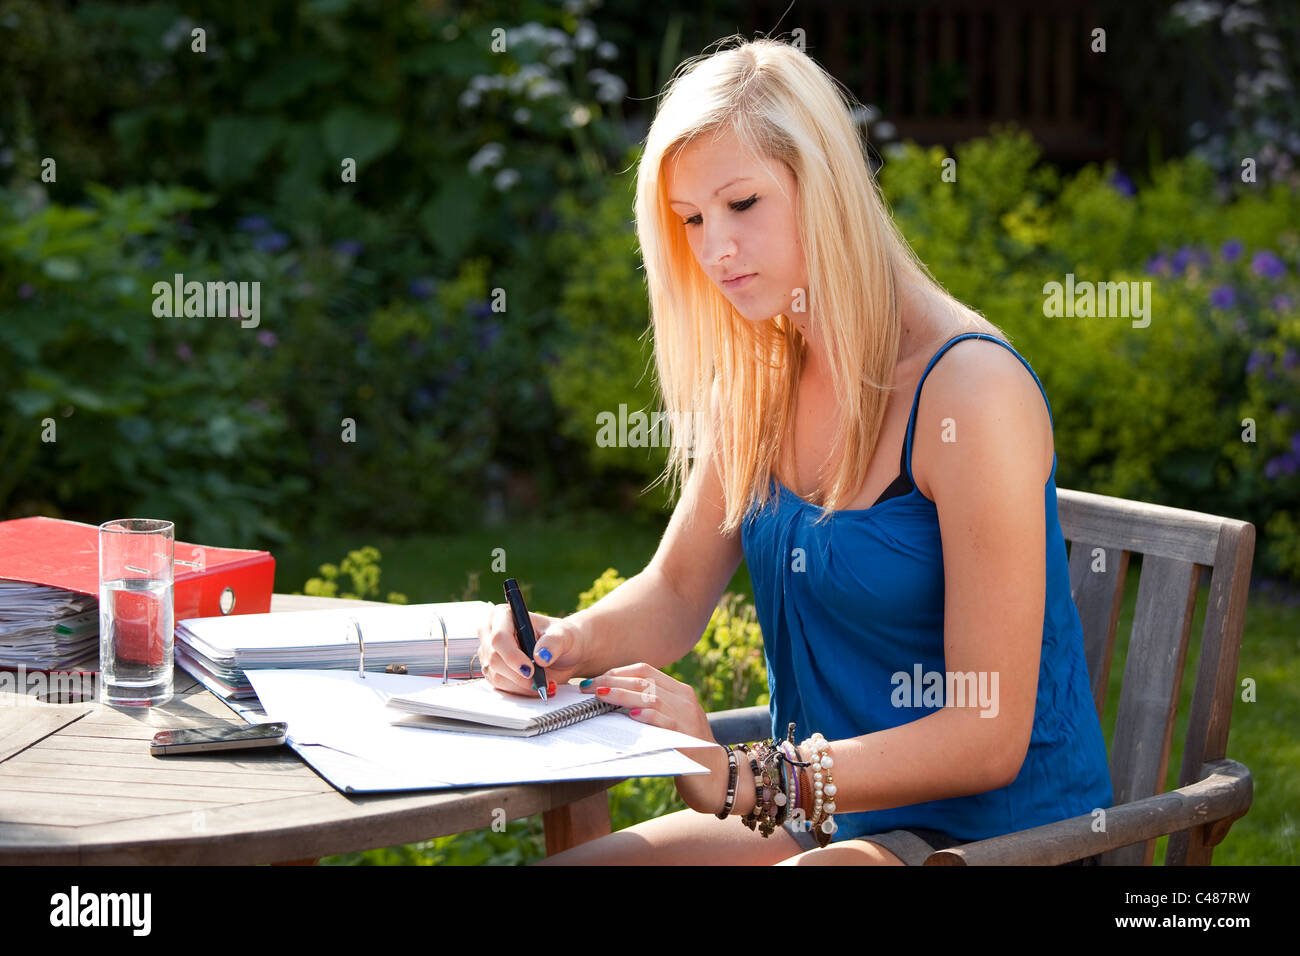 Young girl Student studying outside in the garden with notepad and files for exams - Stock Image